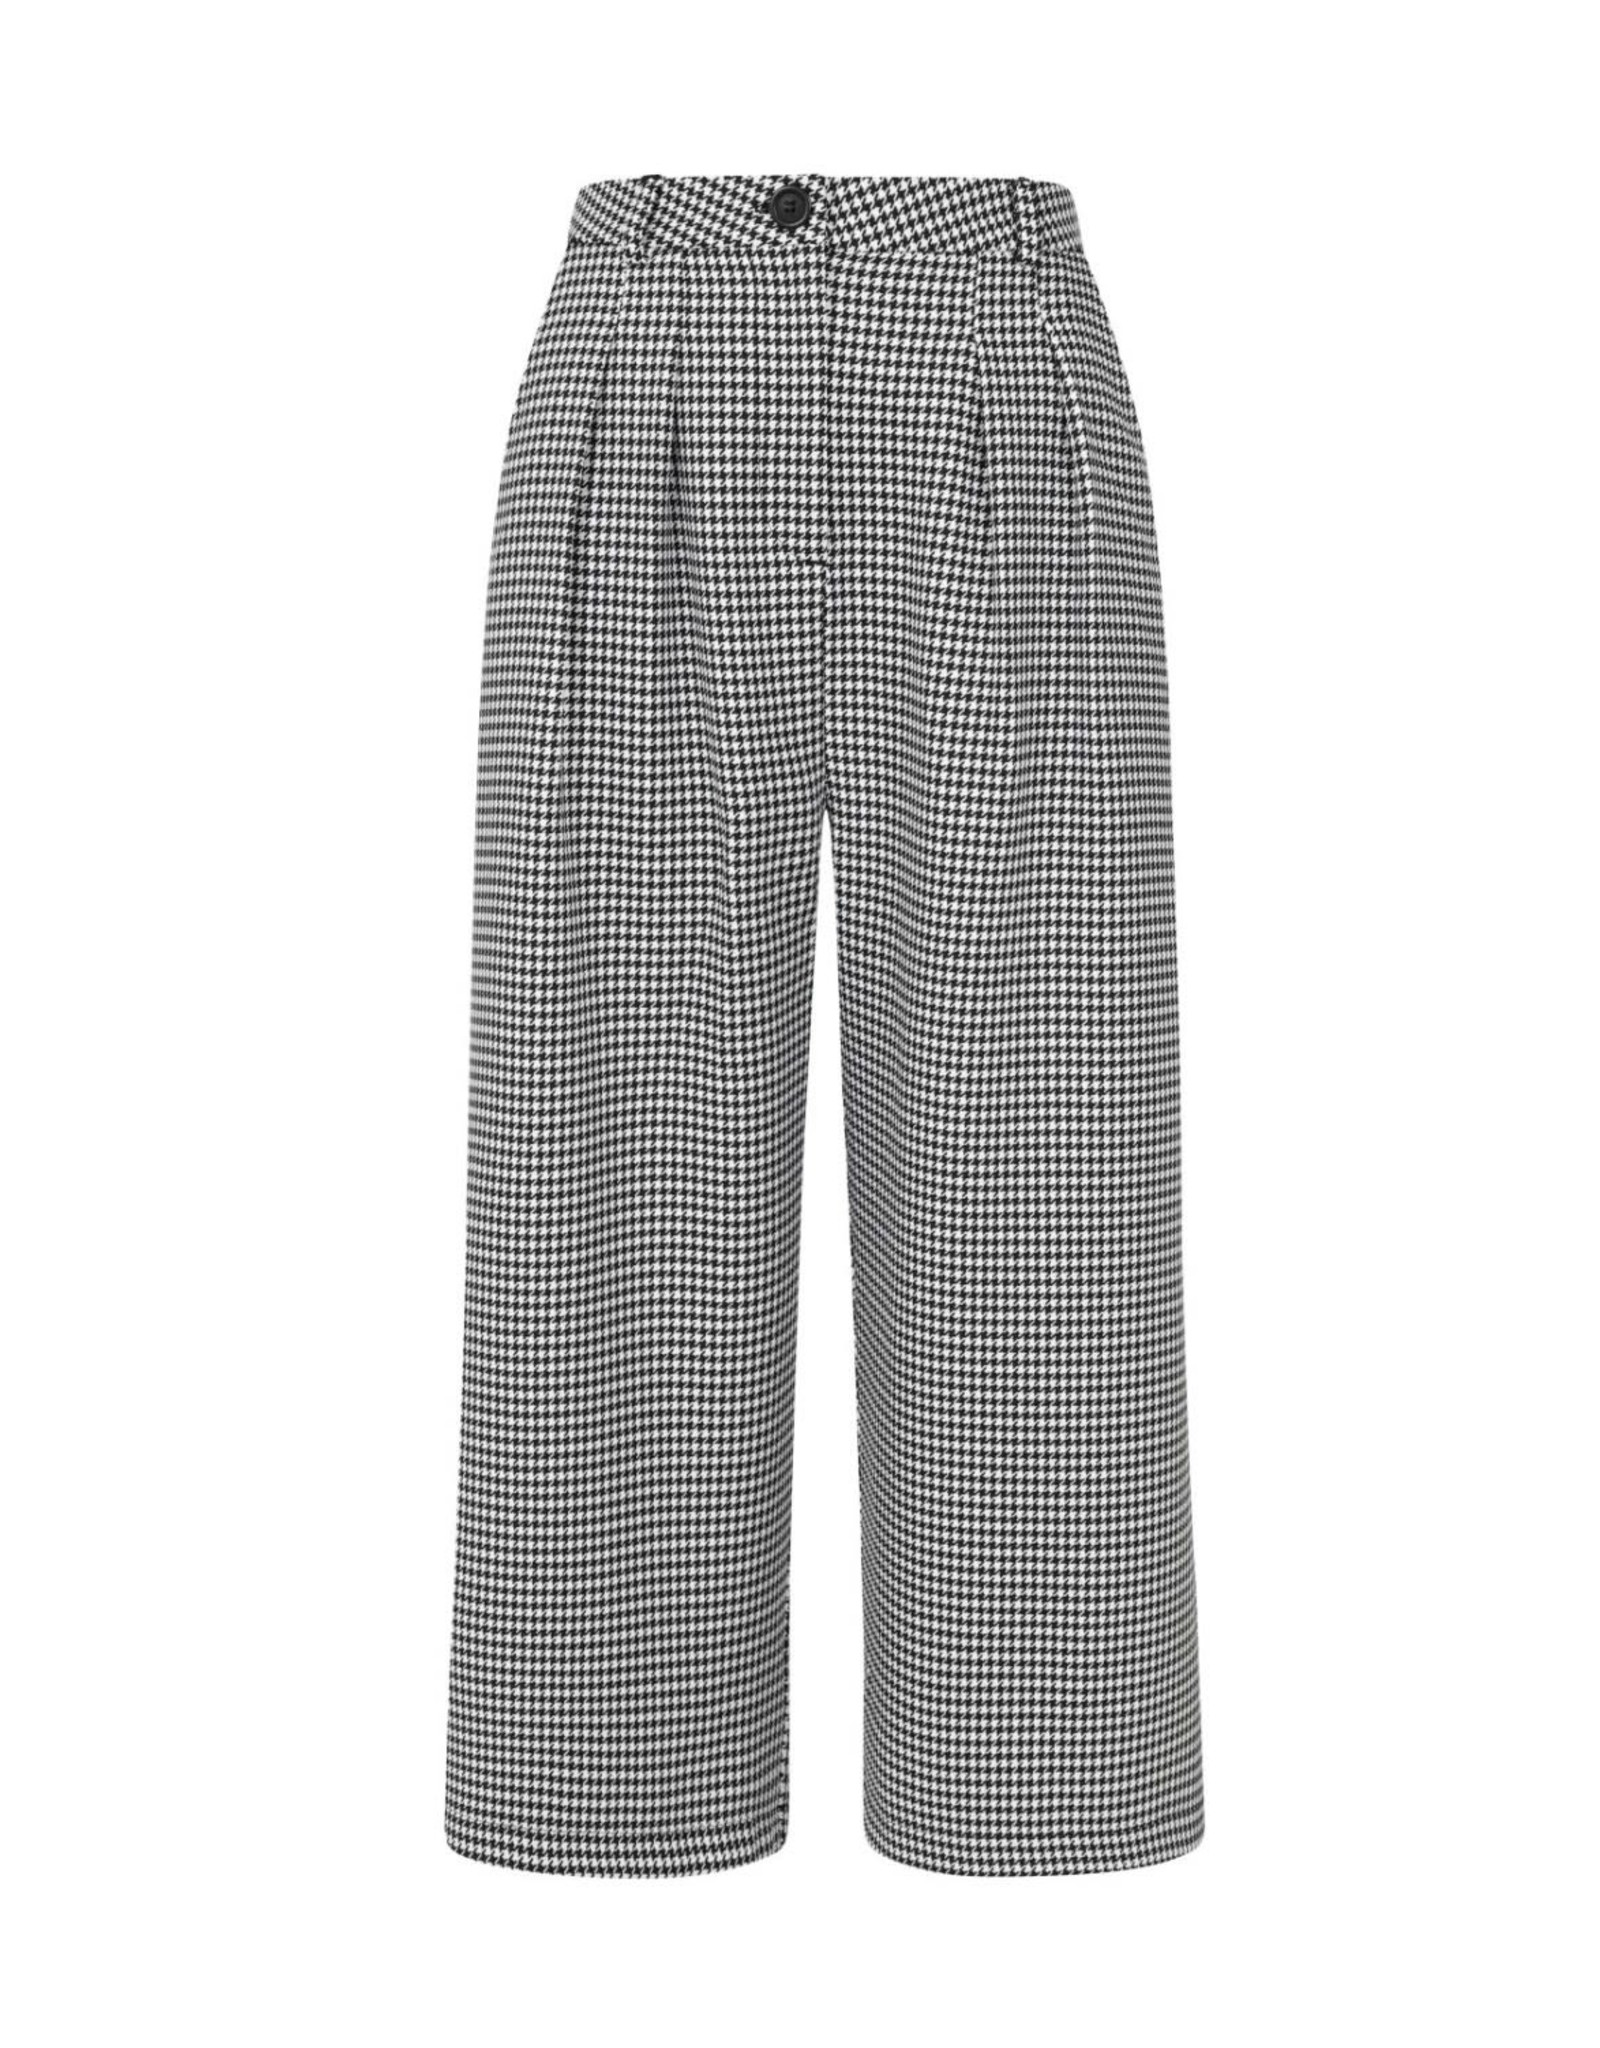 HELL BUNNY - Harvey Culottes